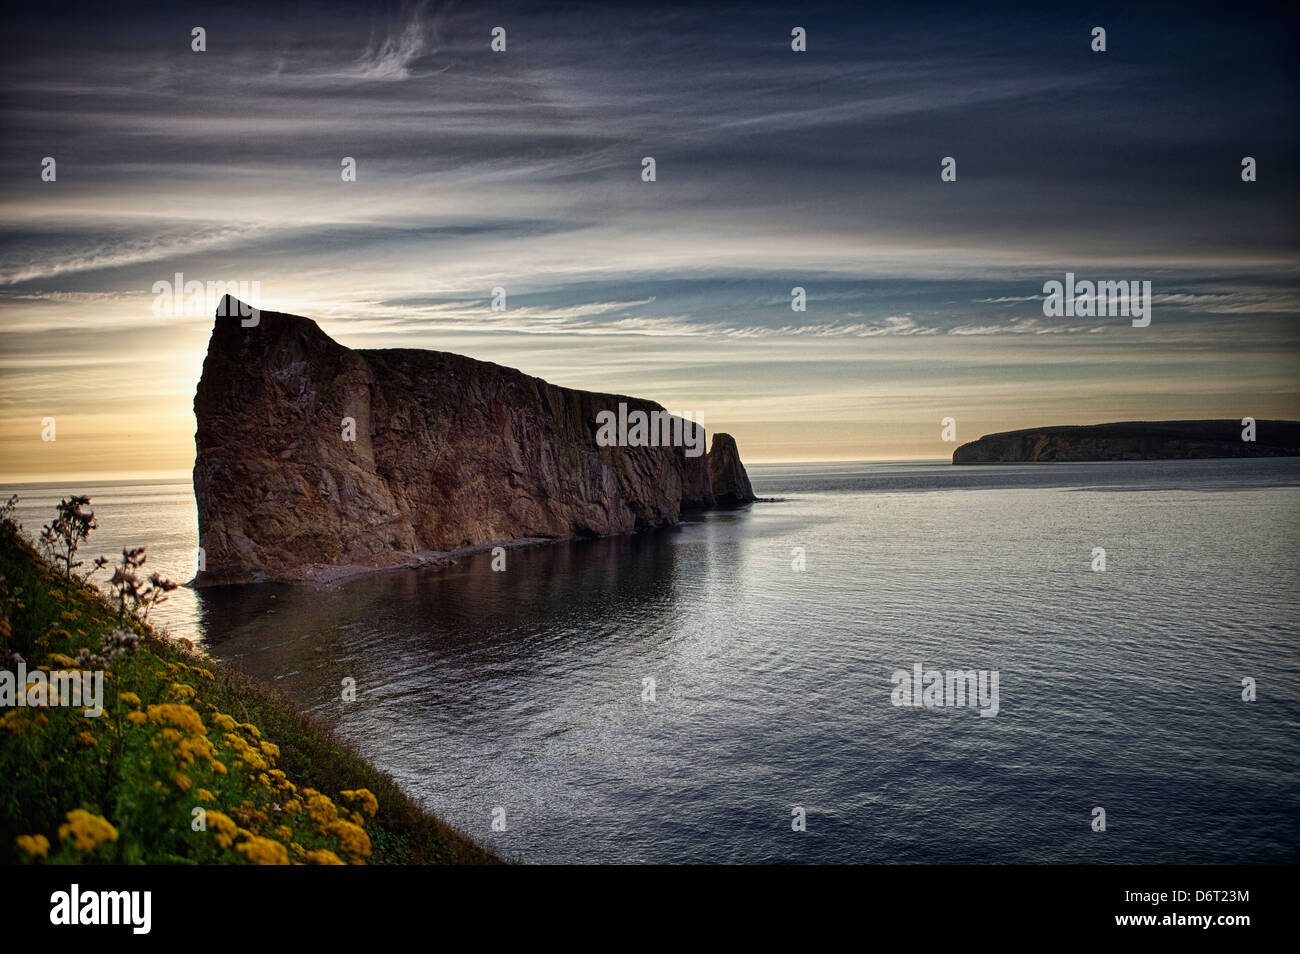 'Rocher Percé' in the 'gaspé' peninsula. Gulf of St-Lawrence - Stock Image